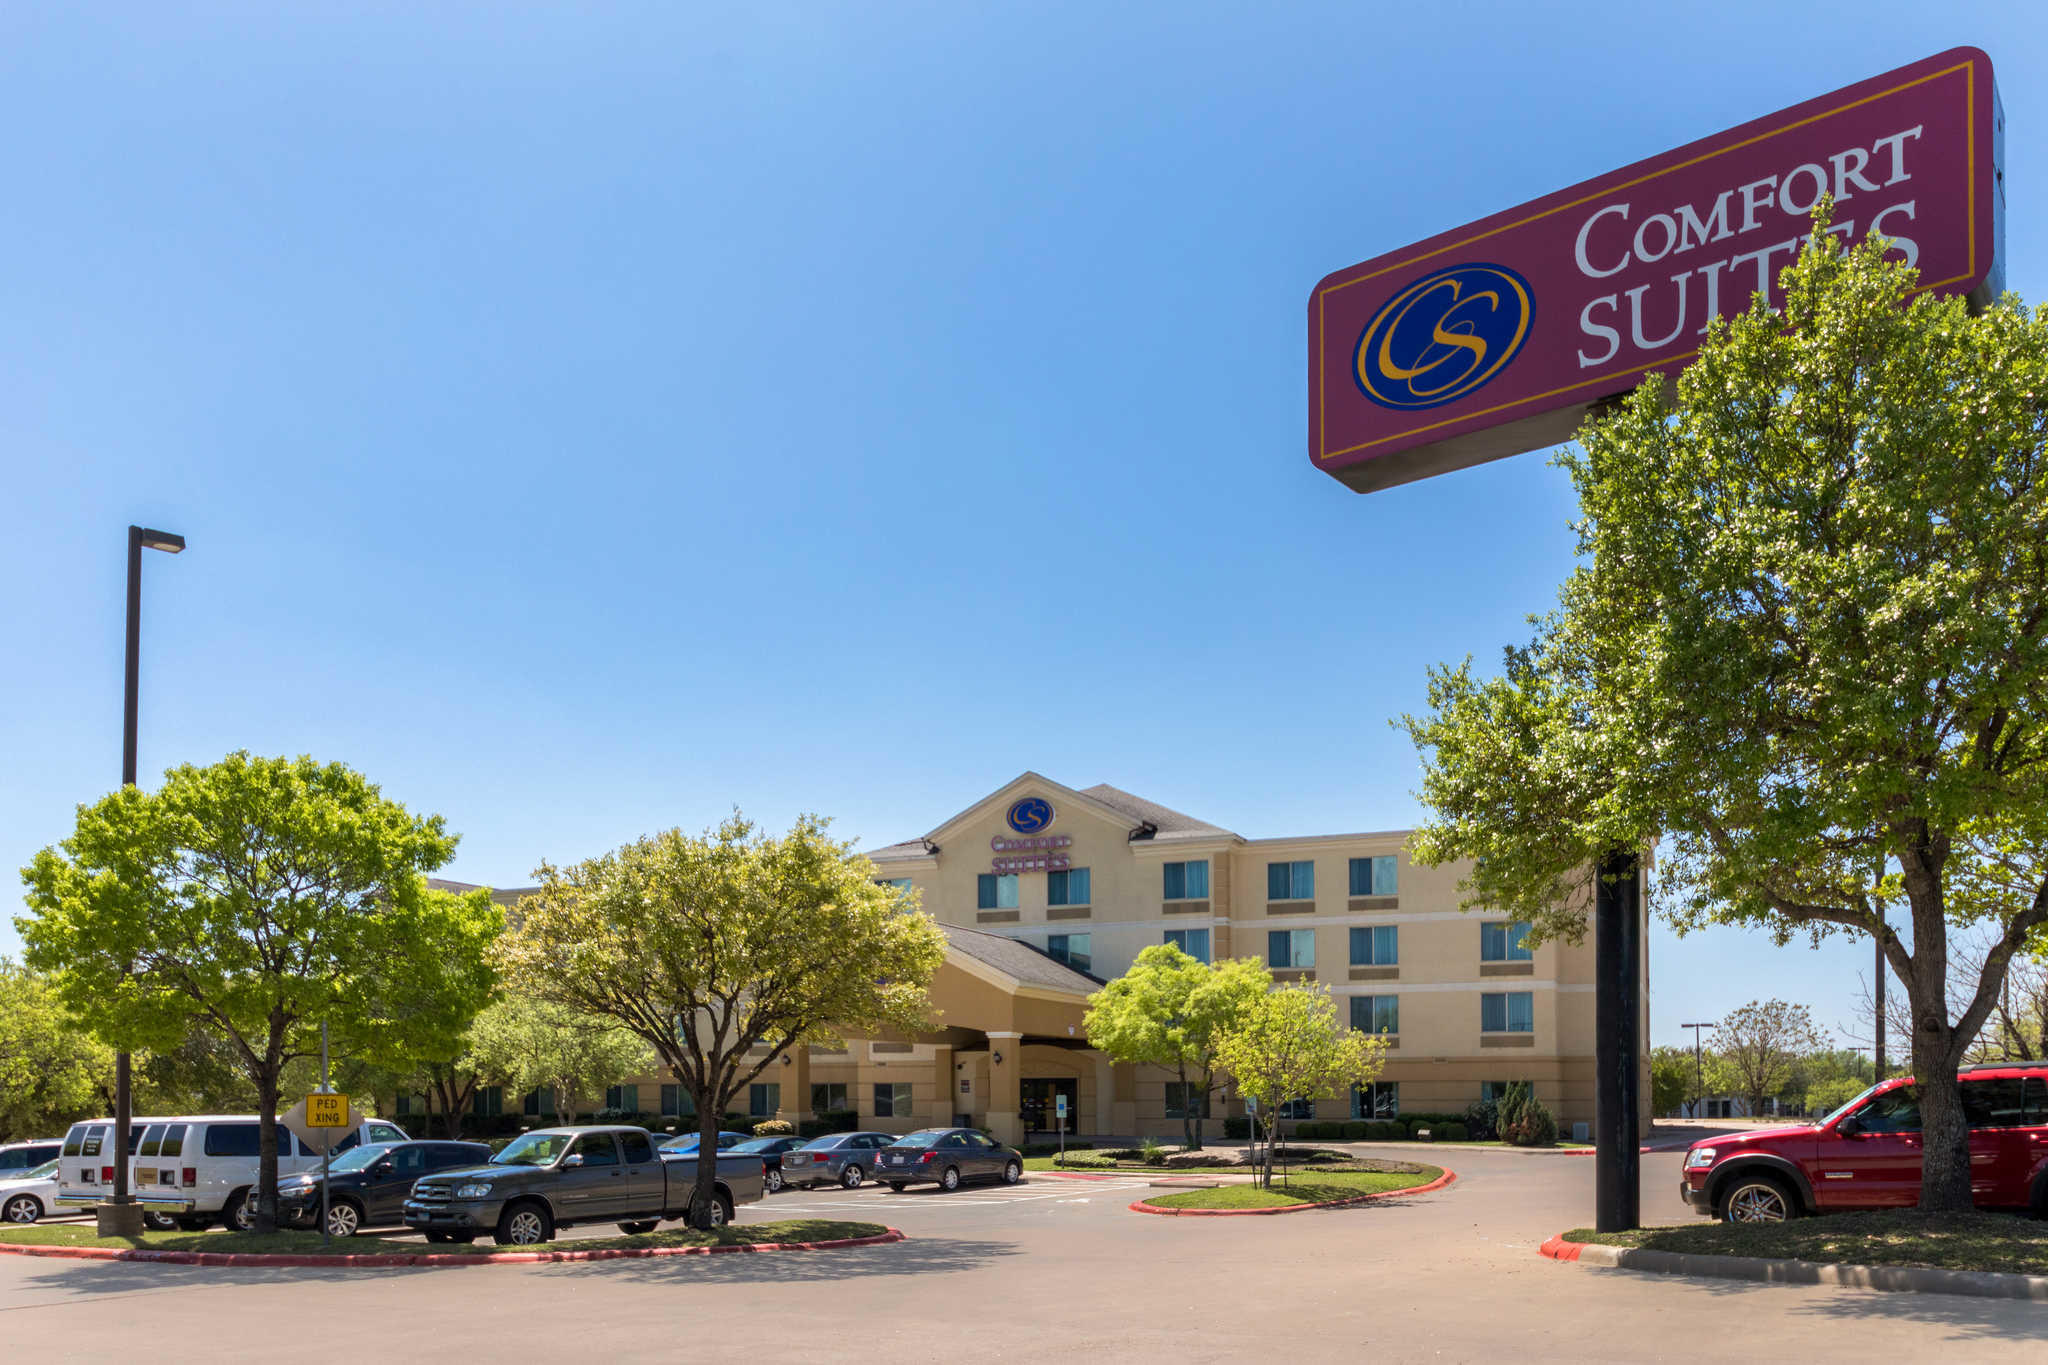 The Residence Inn Round Rock is located just north of Austin and offers impeccable service and spacious apartment-style suites. Nestled within walking distance from Dell Corporate campus and right around the corner from Apple Inc., discover all that Residence Inn Round Rock has to offer.